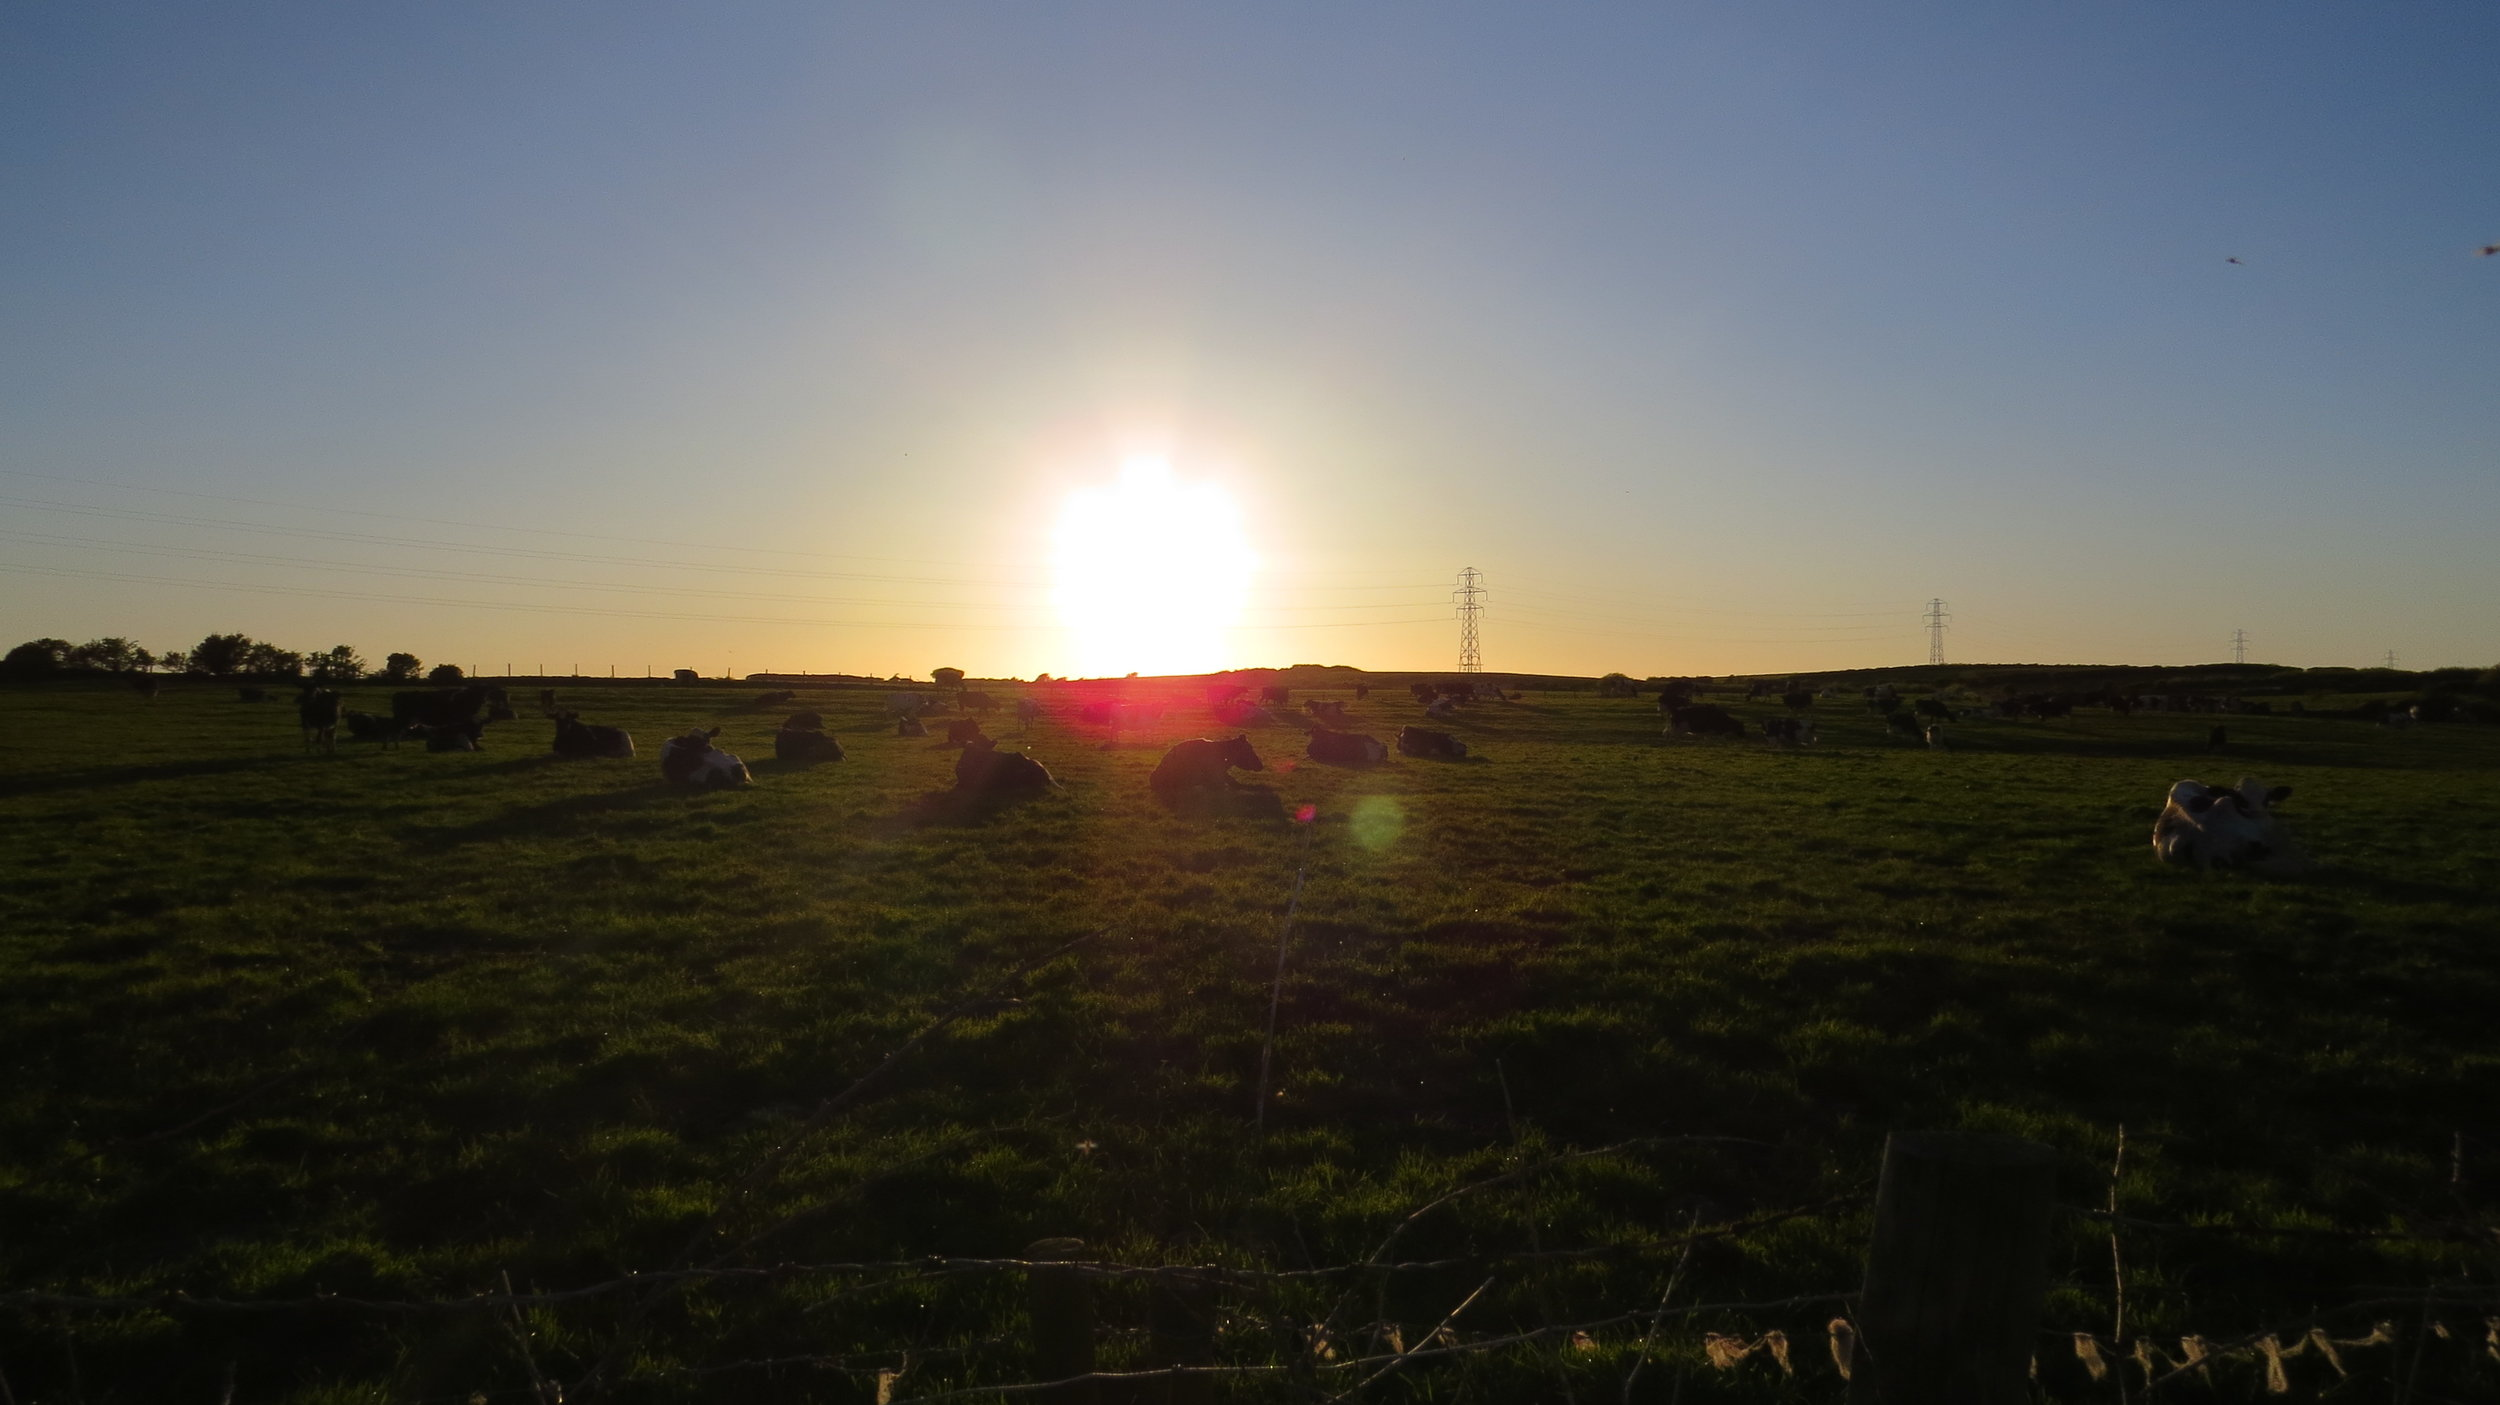 Cows and Sunset